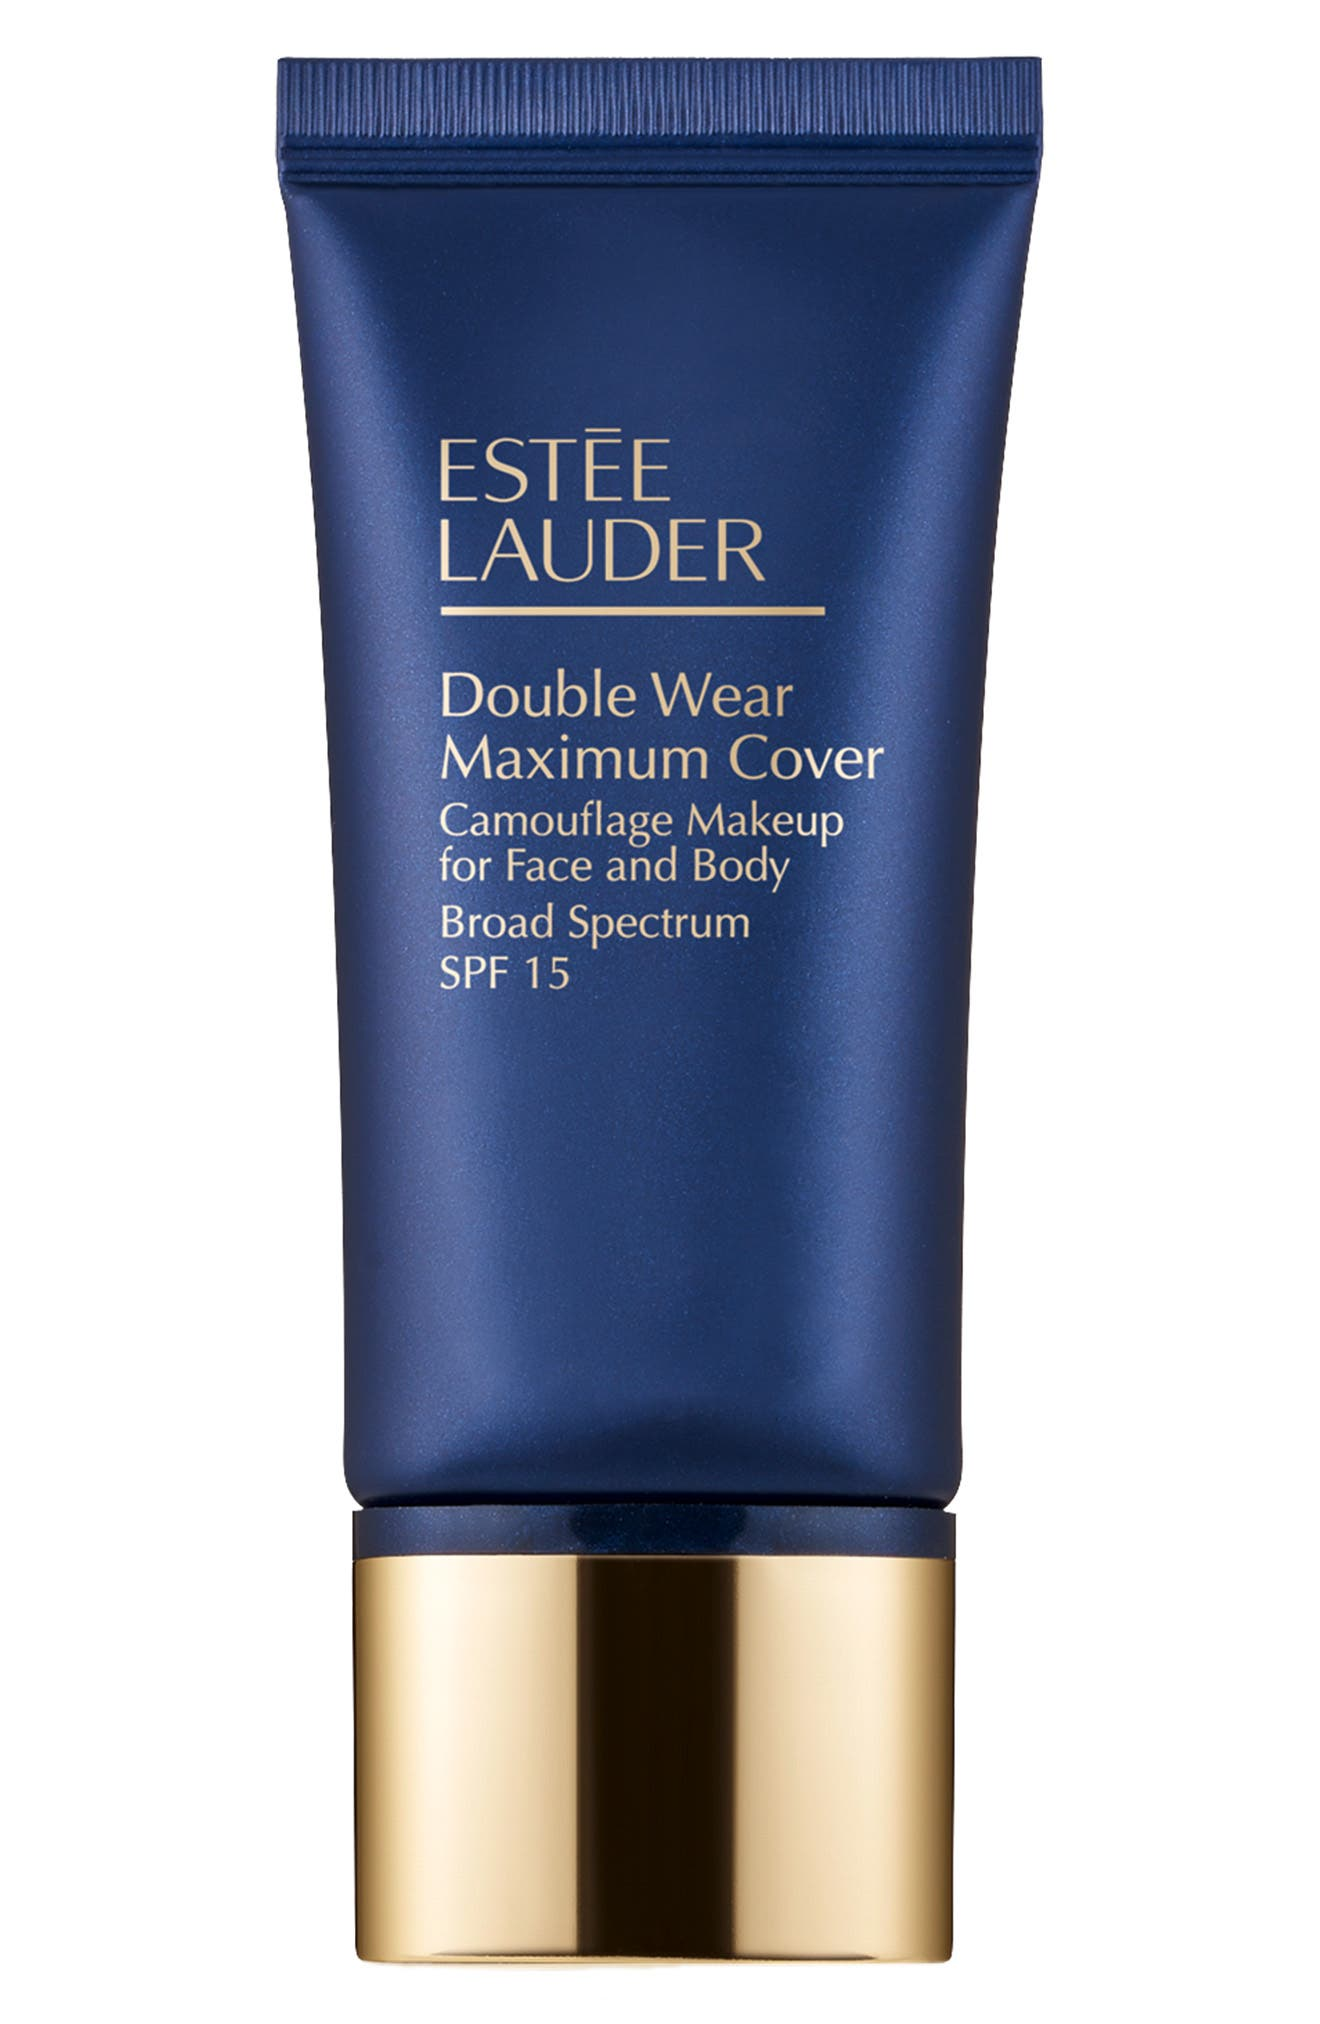 Double Wear Maximum Cover Camouflage Makeup Foundation For Face And Body Spf 15